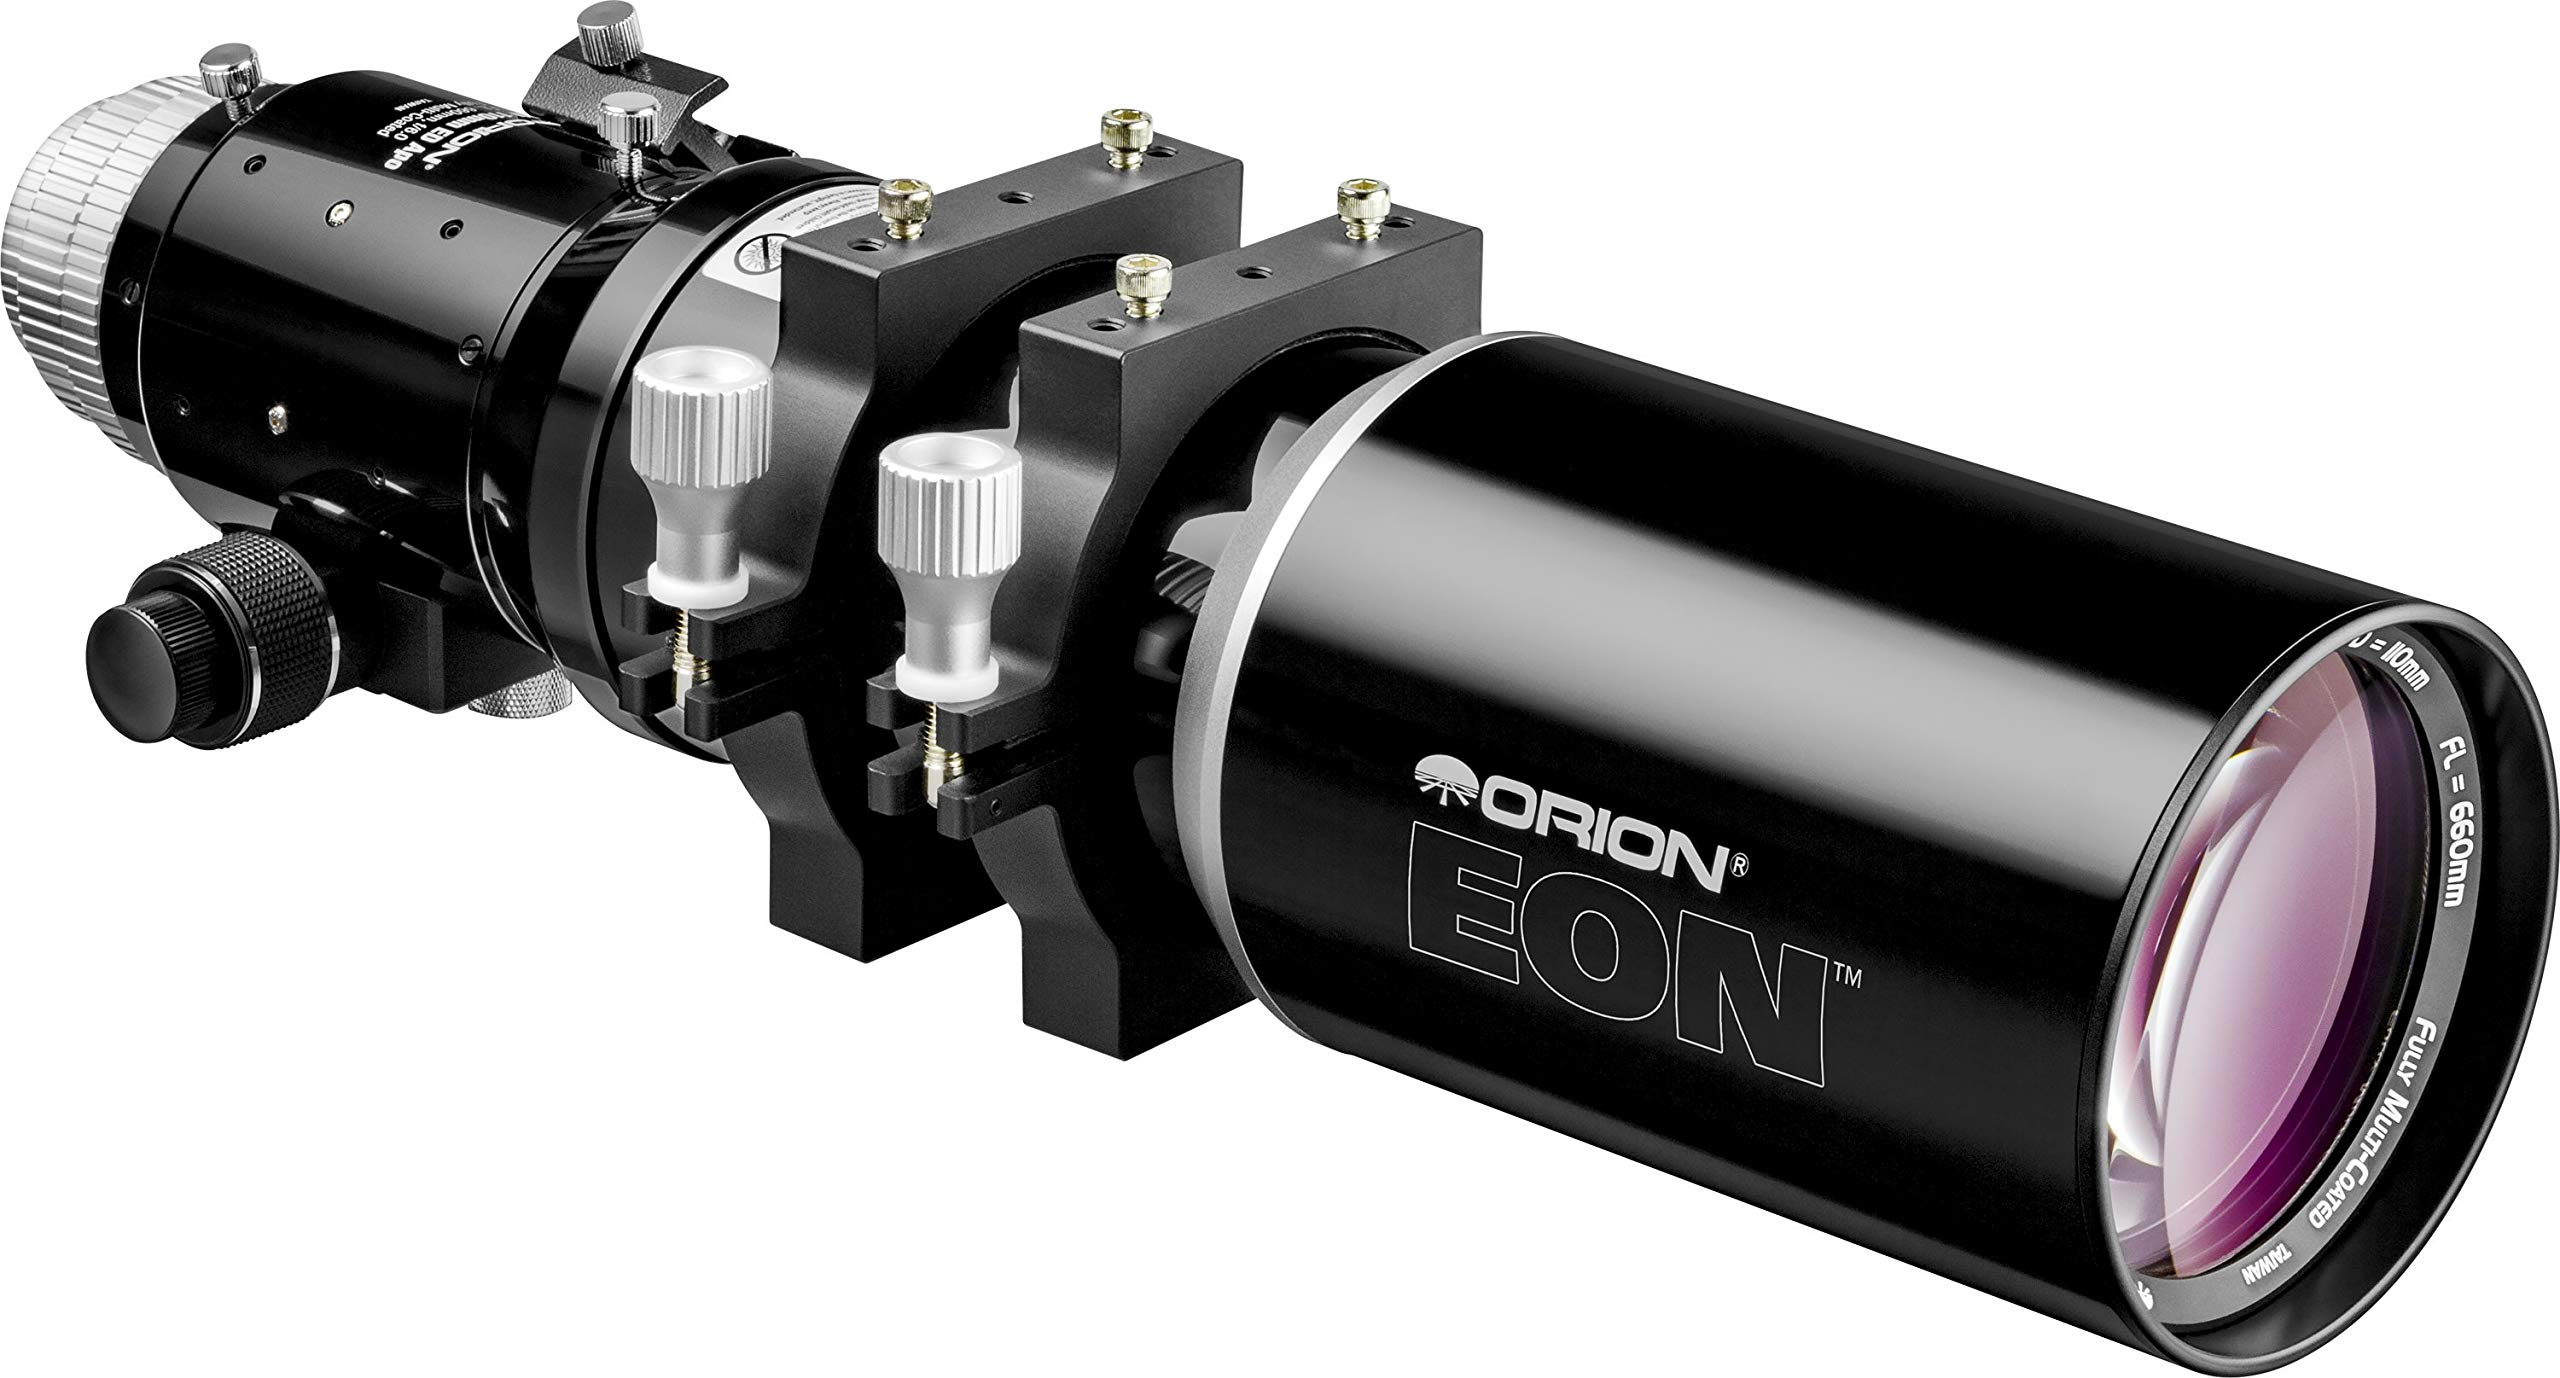 Orion 10031 EON 110mm ED f/6.0 Apochromatic Refractor Telescope (Black) by Orion